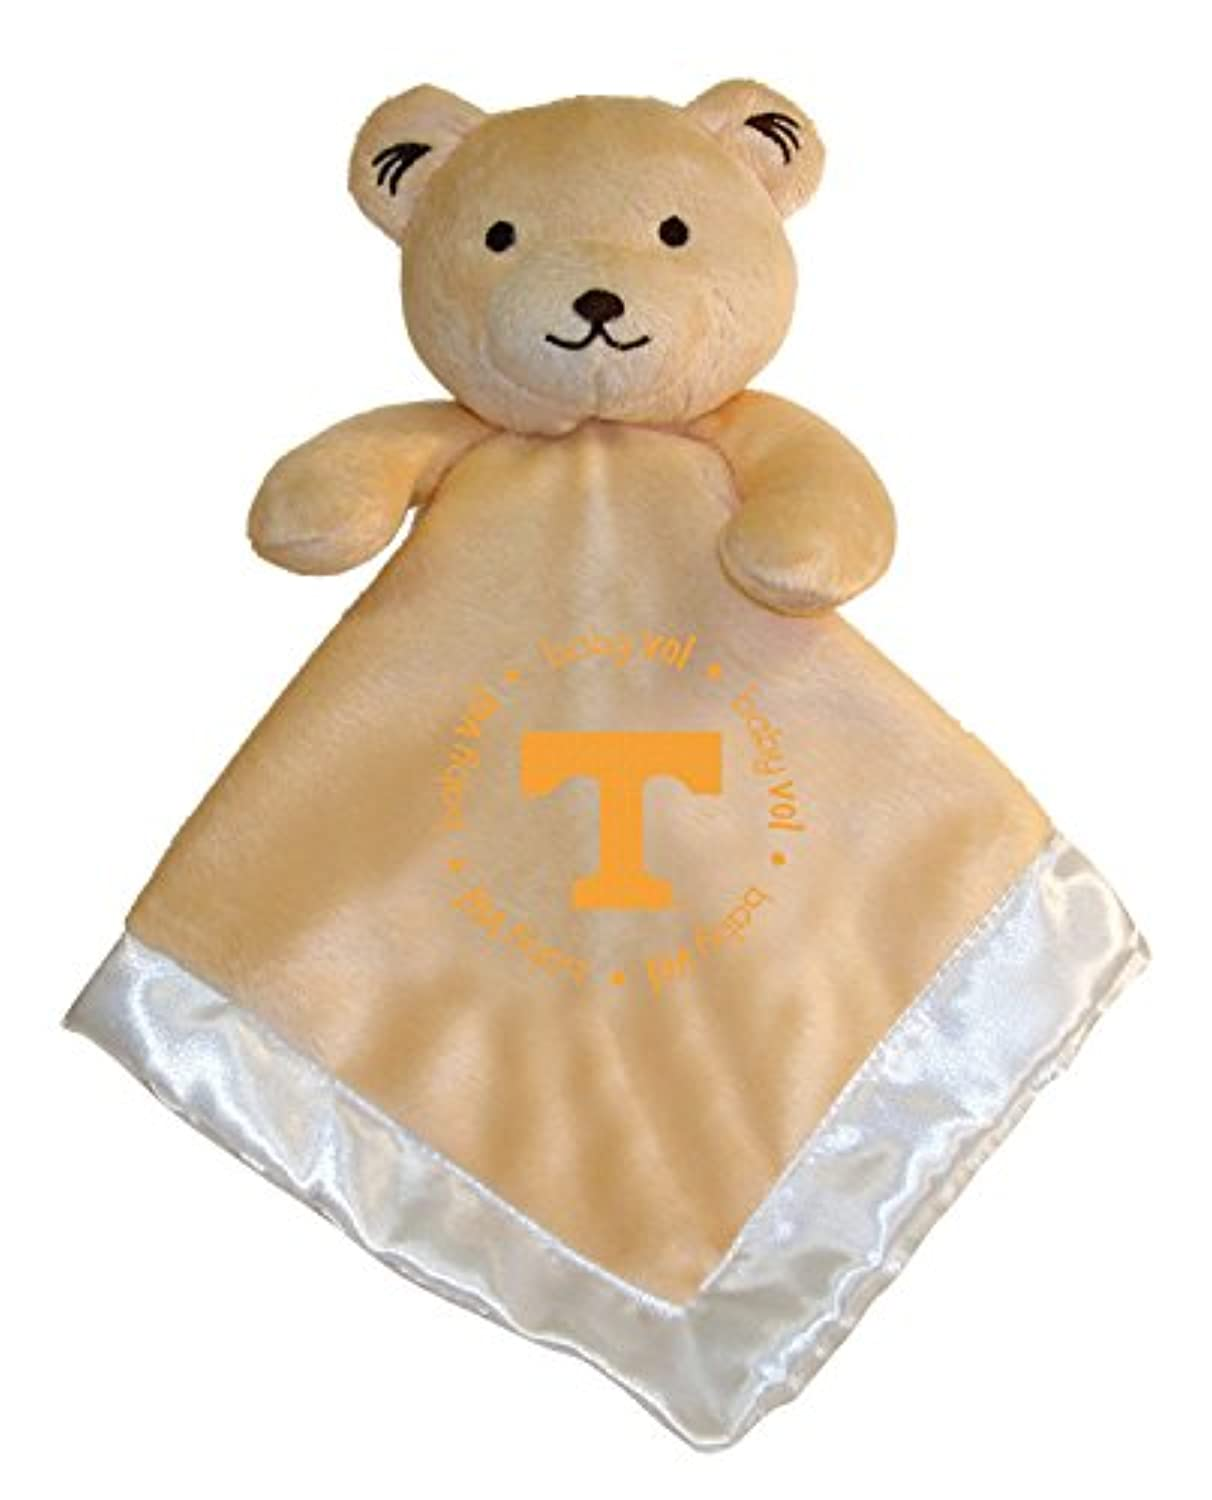 Baby Fanatic Security Bear Blanket, University of Tennessee by Baby Fanatic